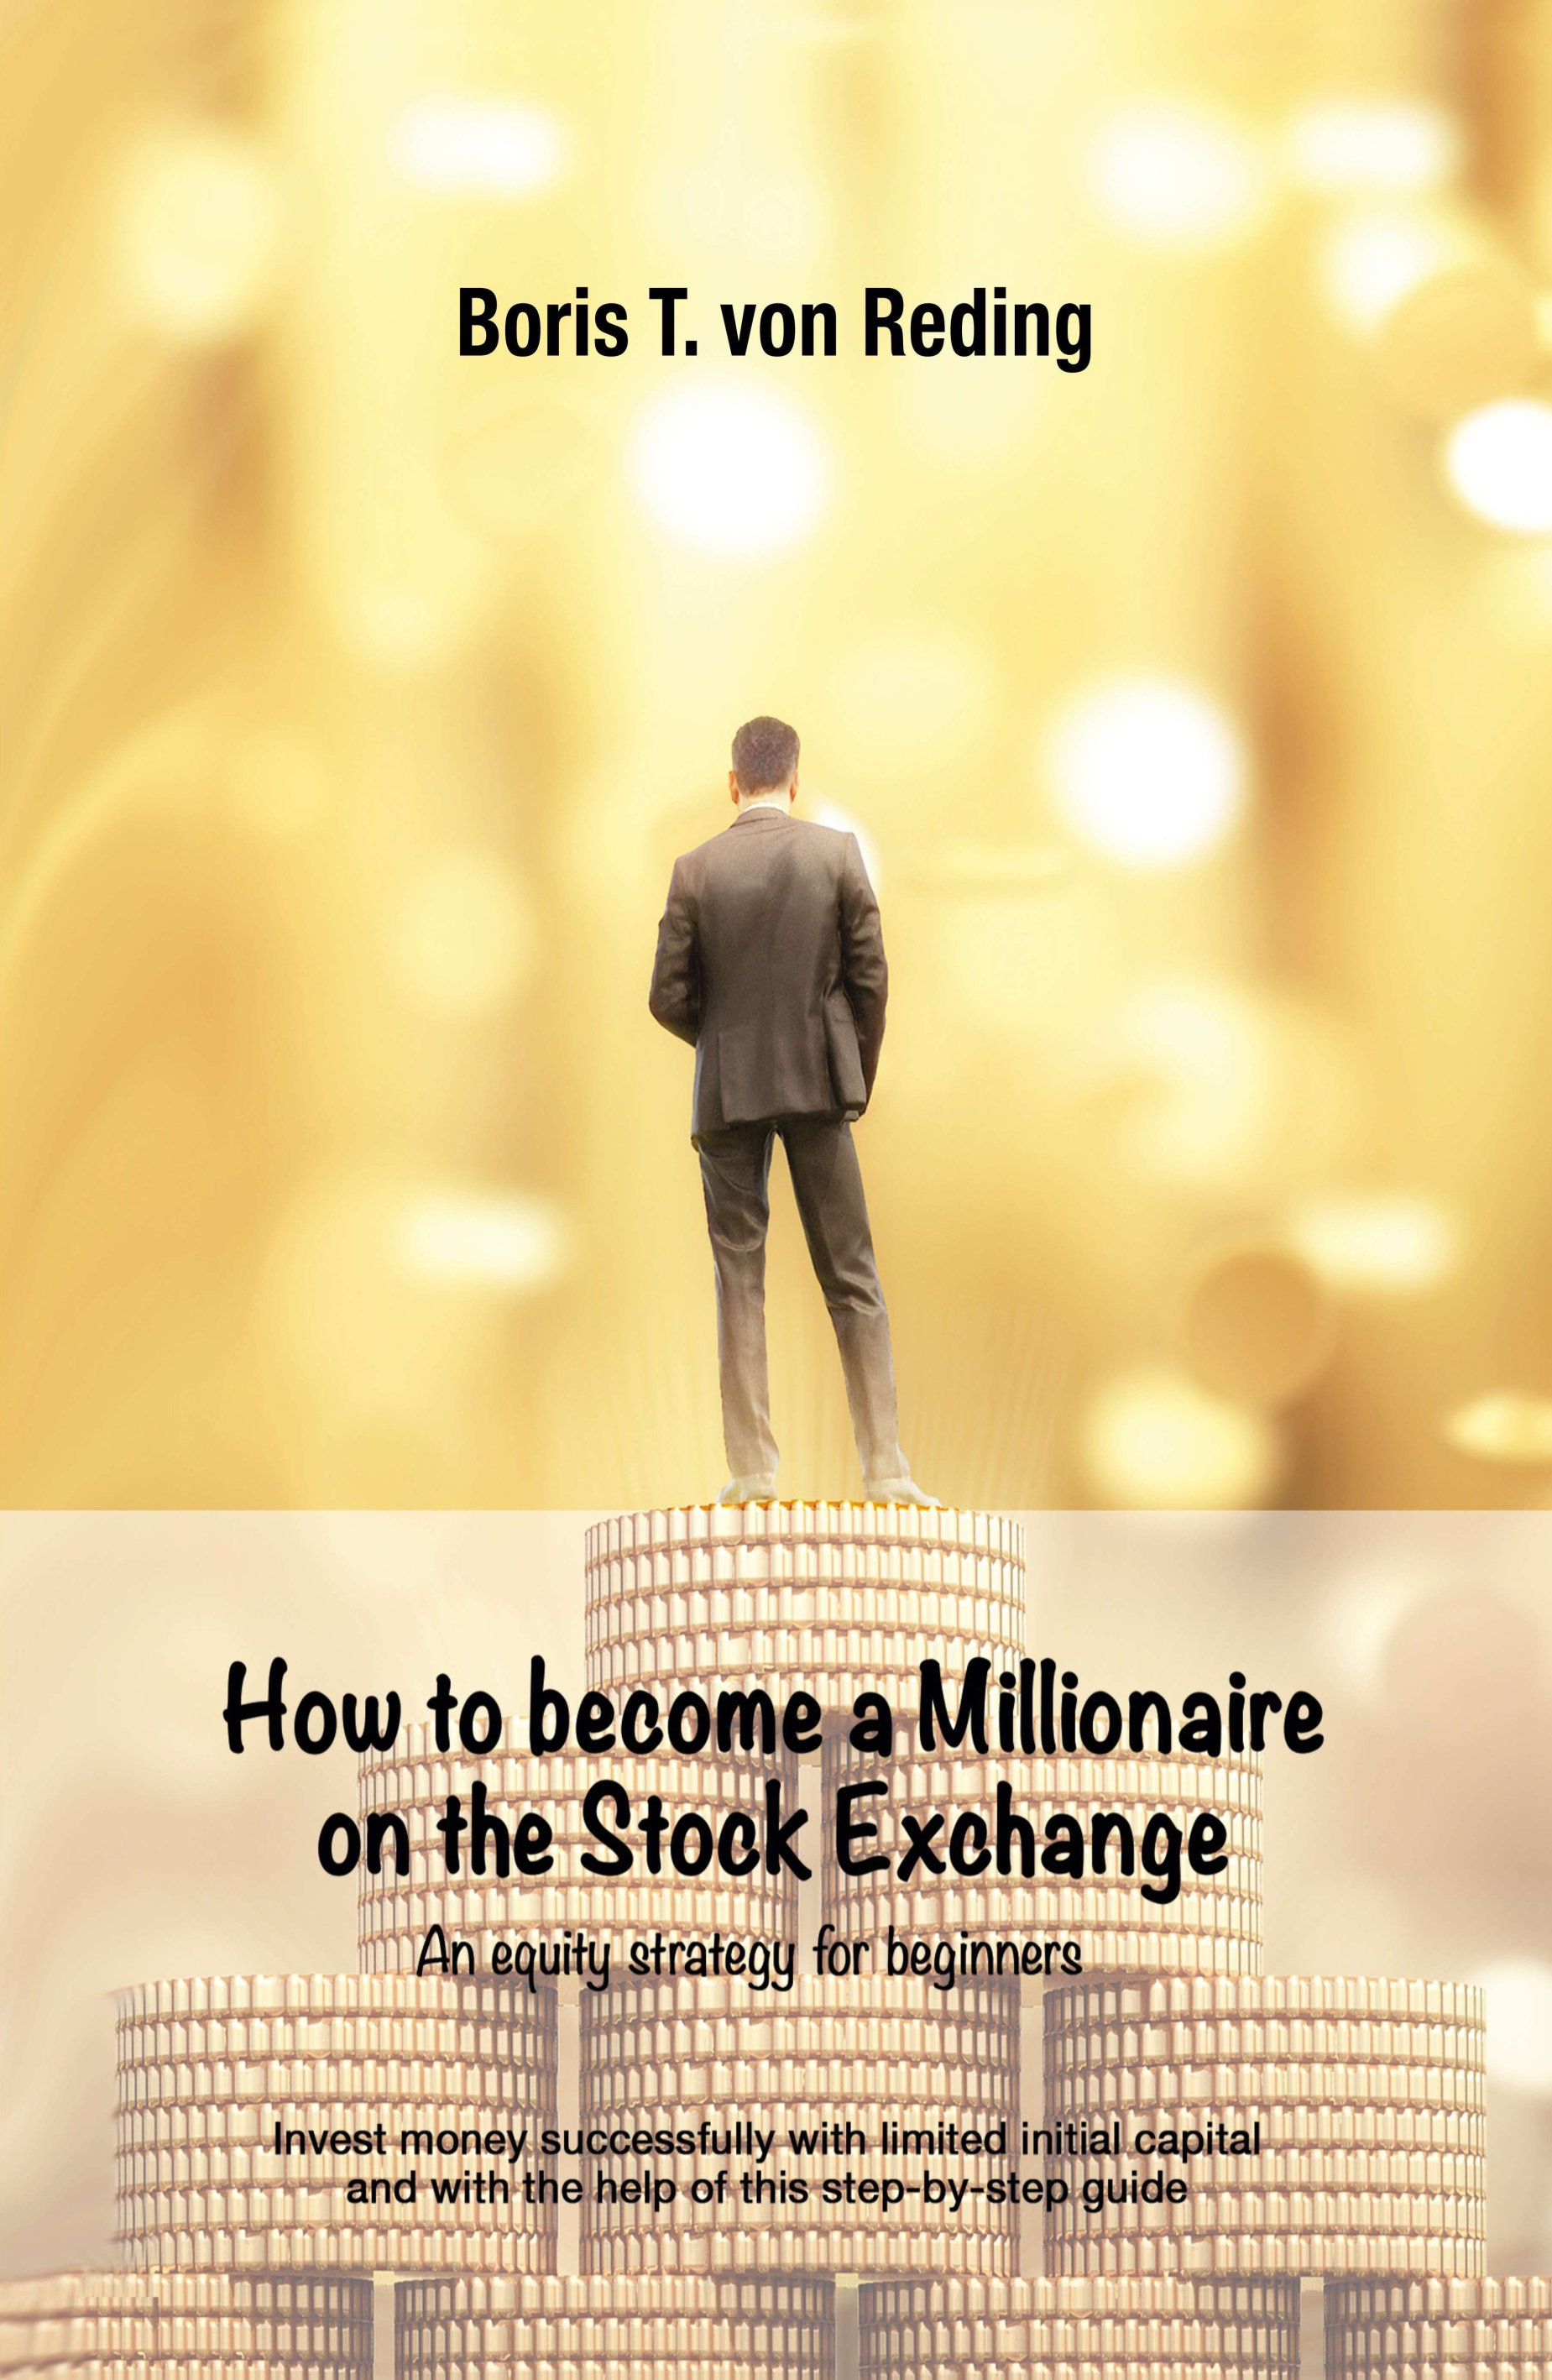 How to become a Millionaire on the Stock Exchange - Practical step-by-step guide